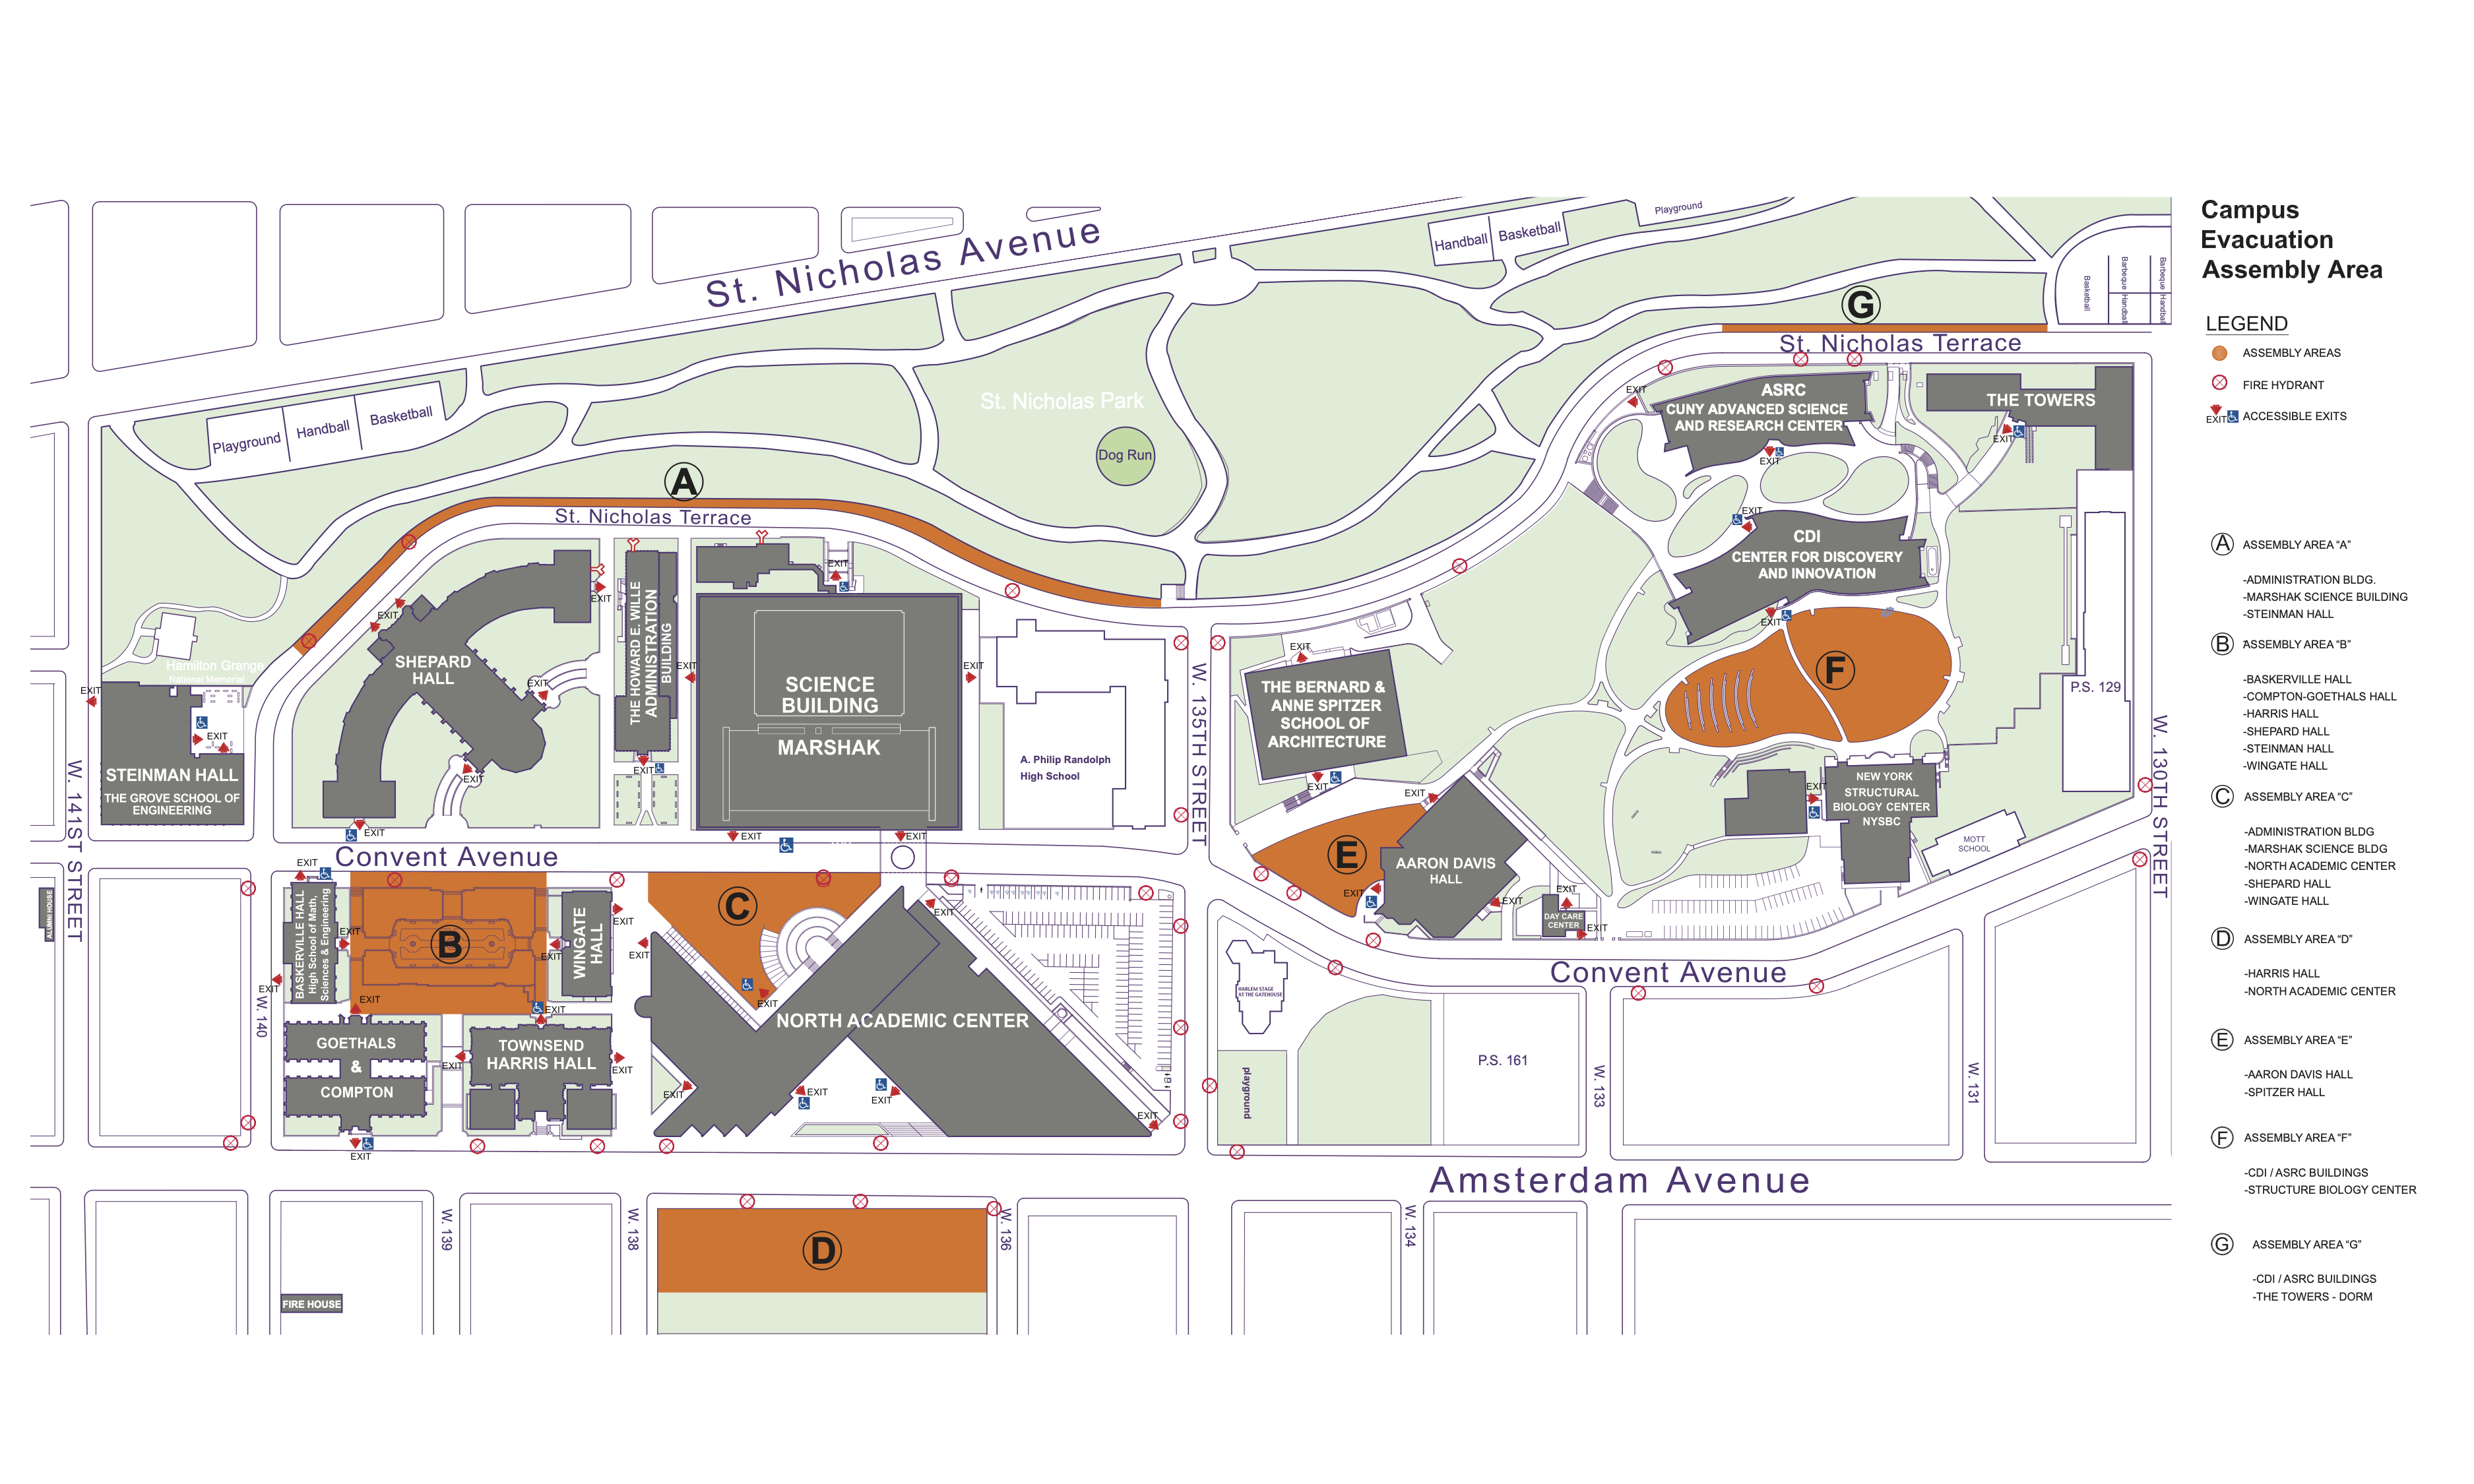 Campus Map - Assembly Areas - Complete Campus